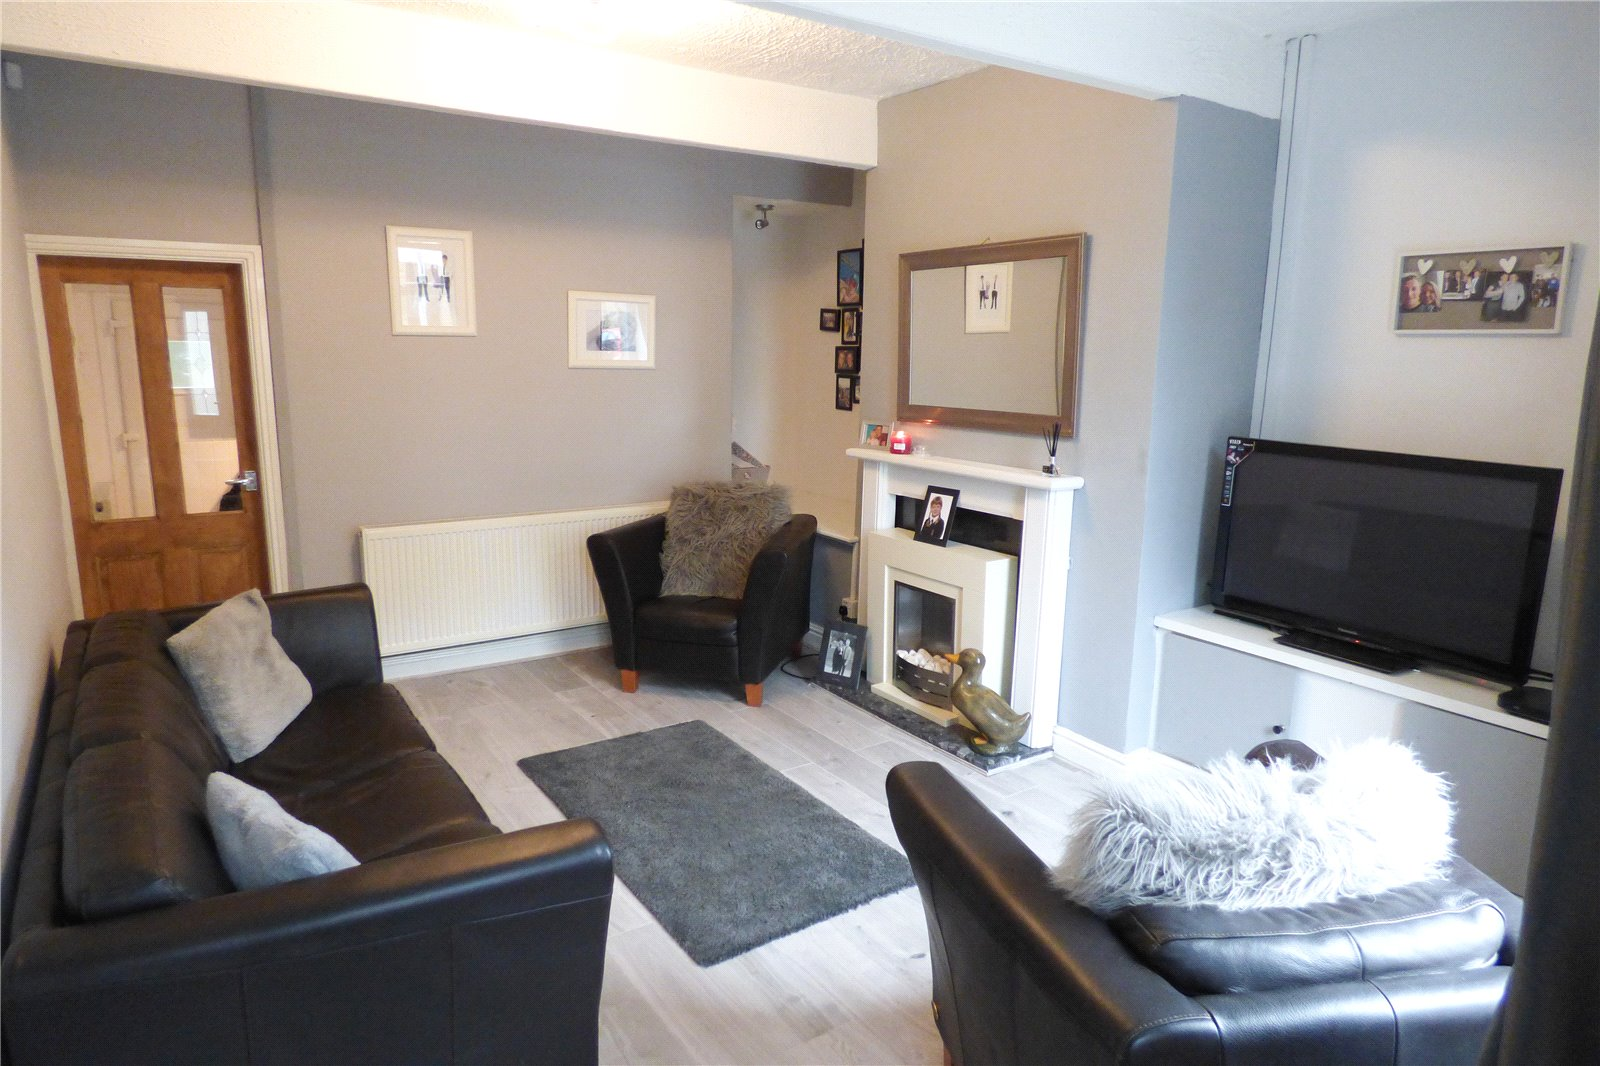 2 Bedrooms Terraced House for sale in Stamford Road, Mossley, Ashton-under-Lyne, Greater Manchester, OL5